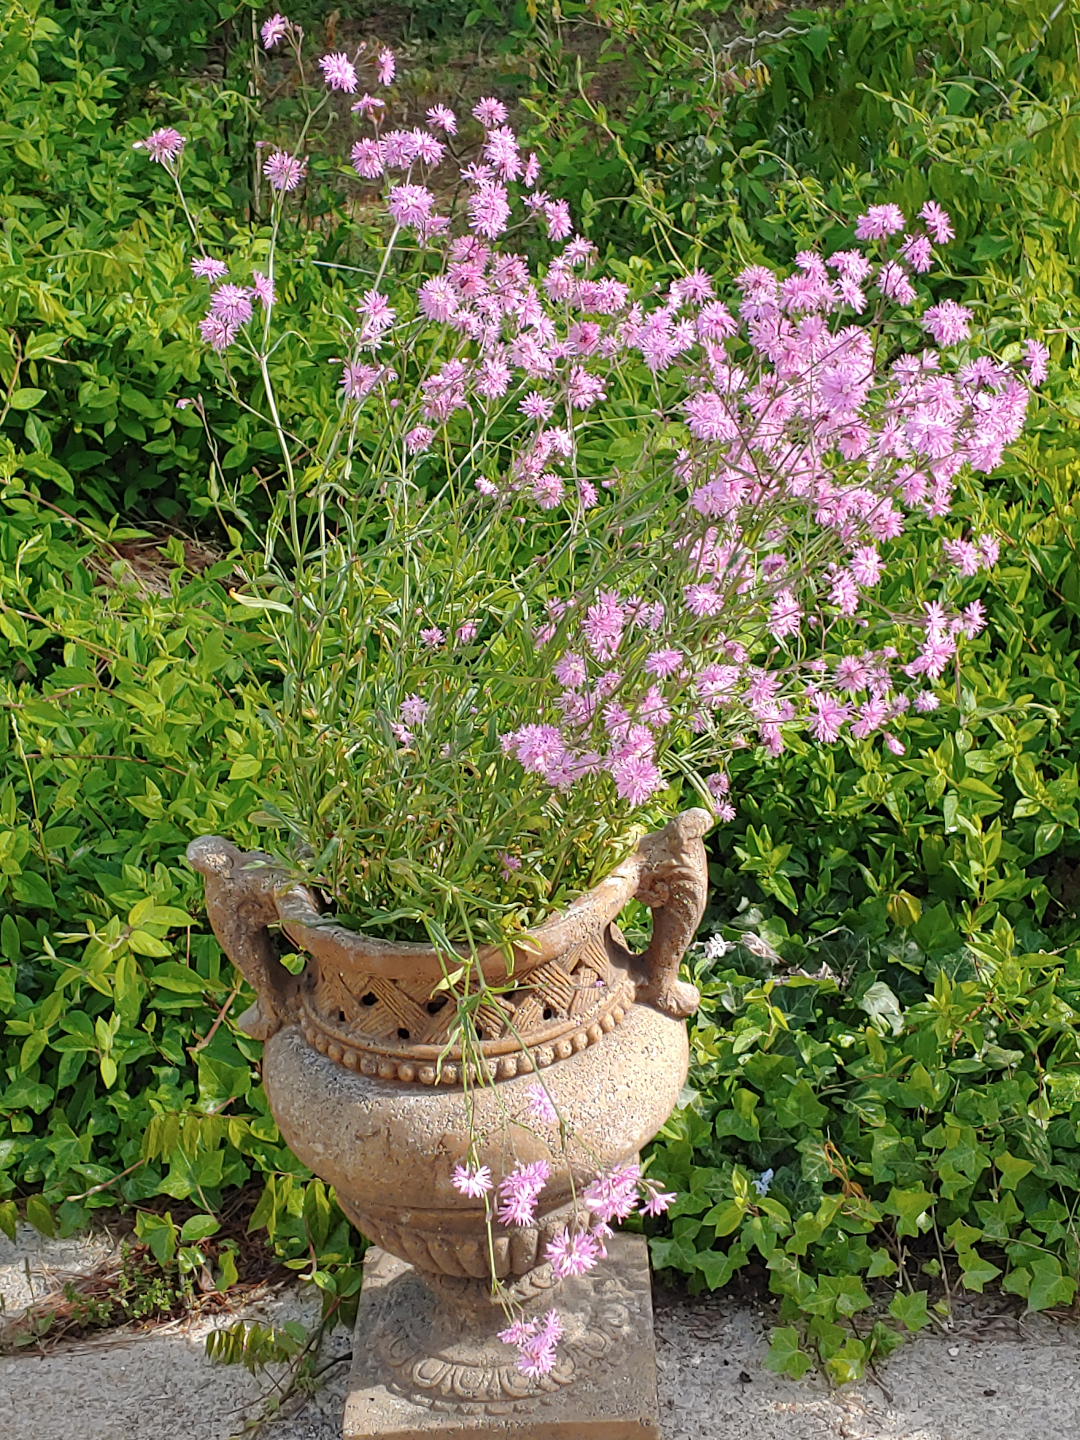 A large urn with tall pink flowers growing in it